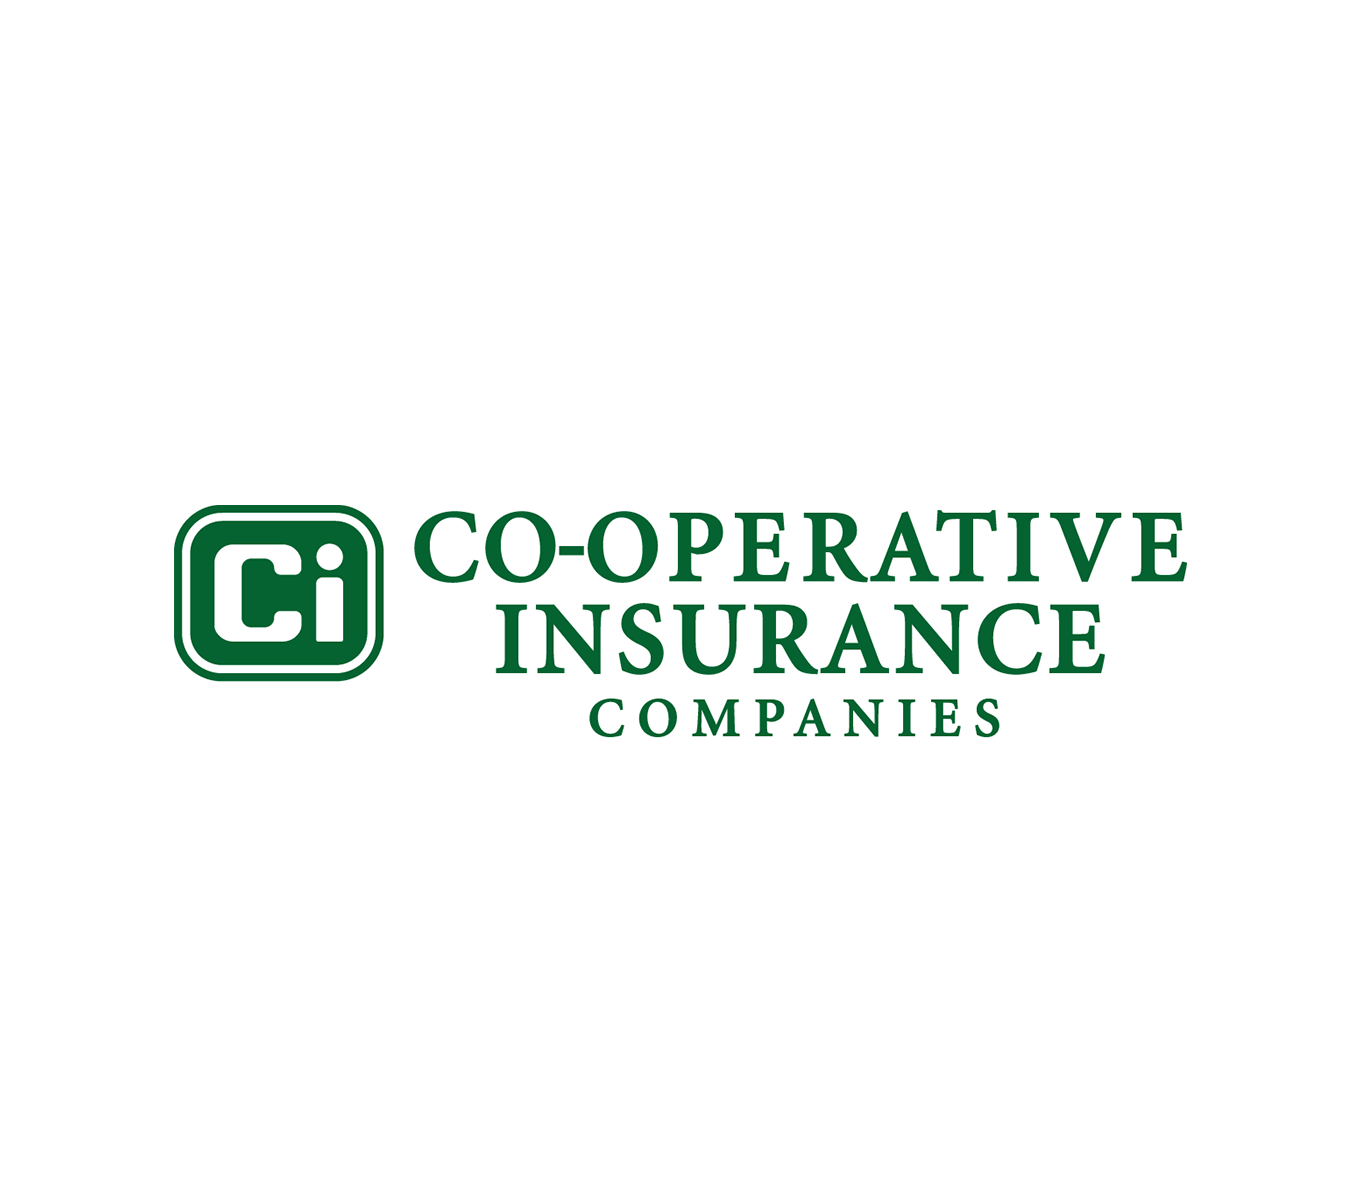 Co-operative Insurance Companies Customer Logo